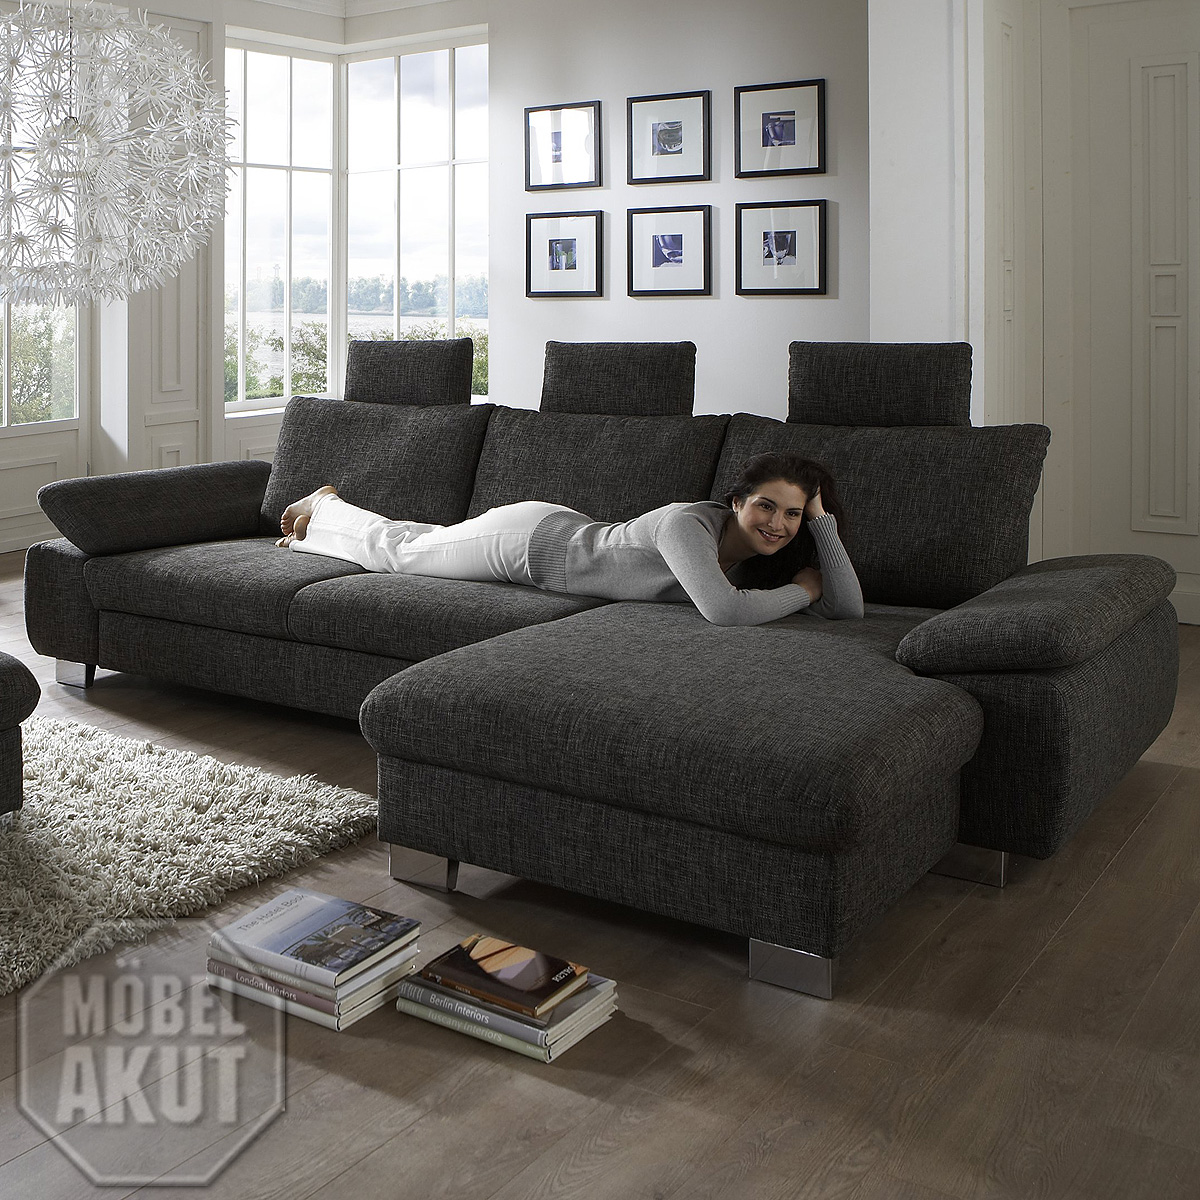 eckgarnitur bliss wohnlandschaft sofa stoff grau braun mit. Black Bedroom Furniture Sets. Home Design Ideas